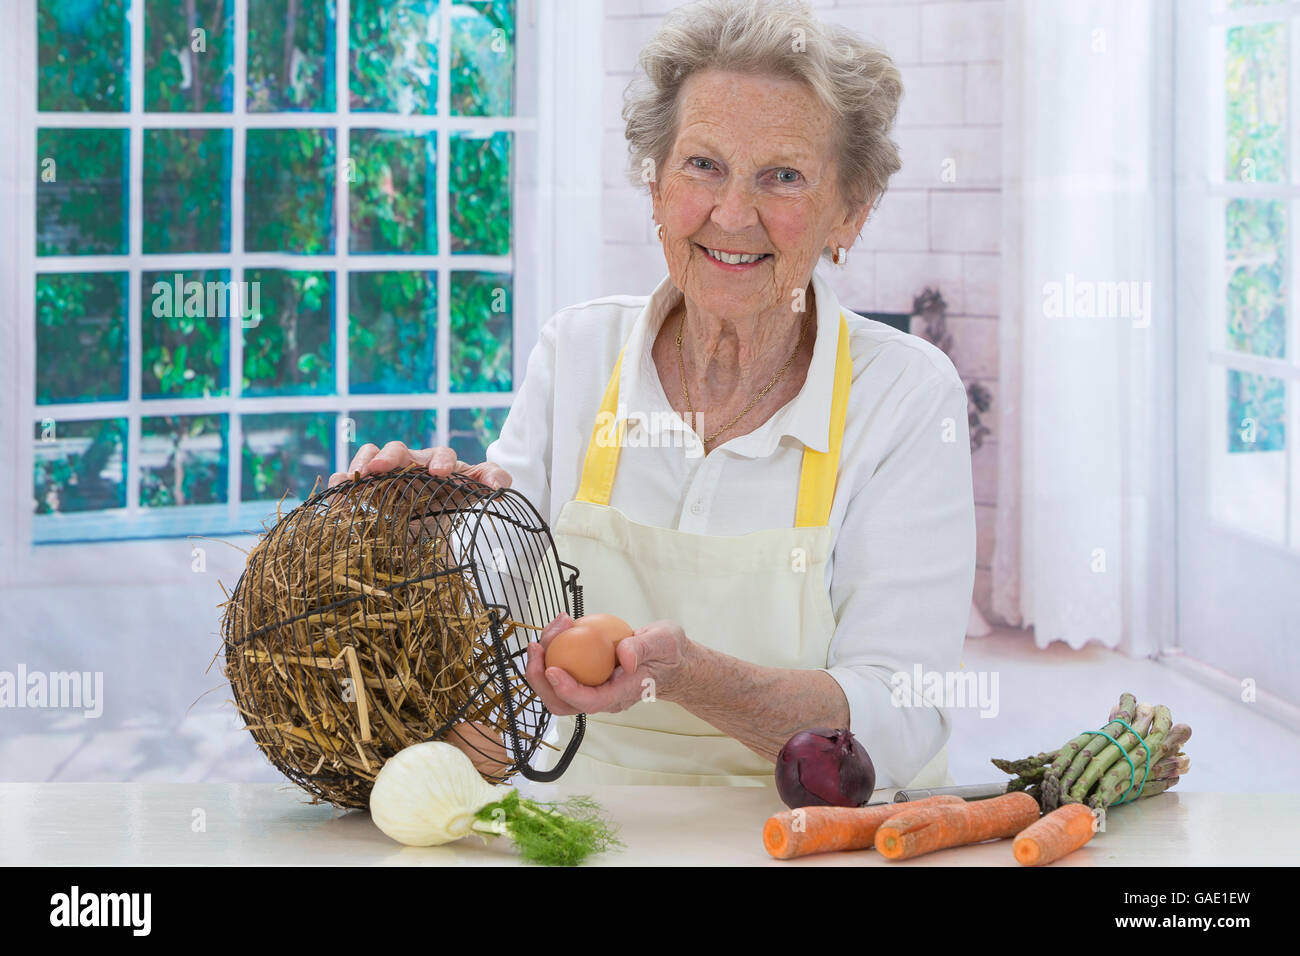 Woman with groceries she just shopped - Stock Image